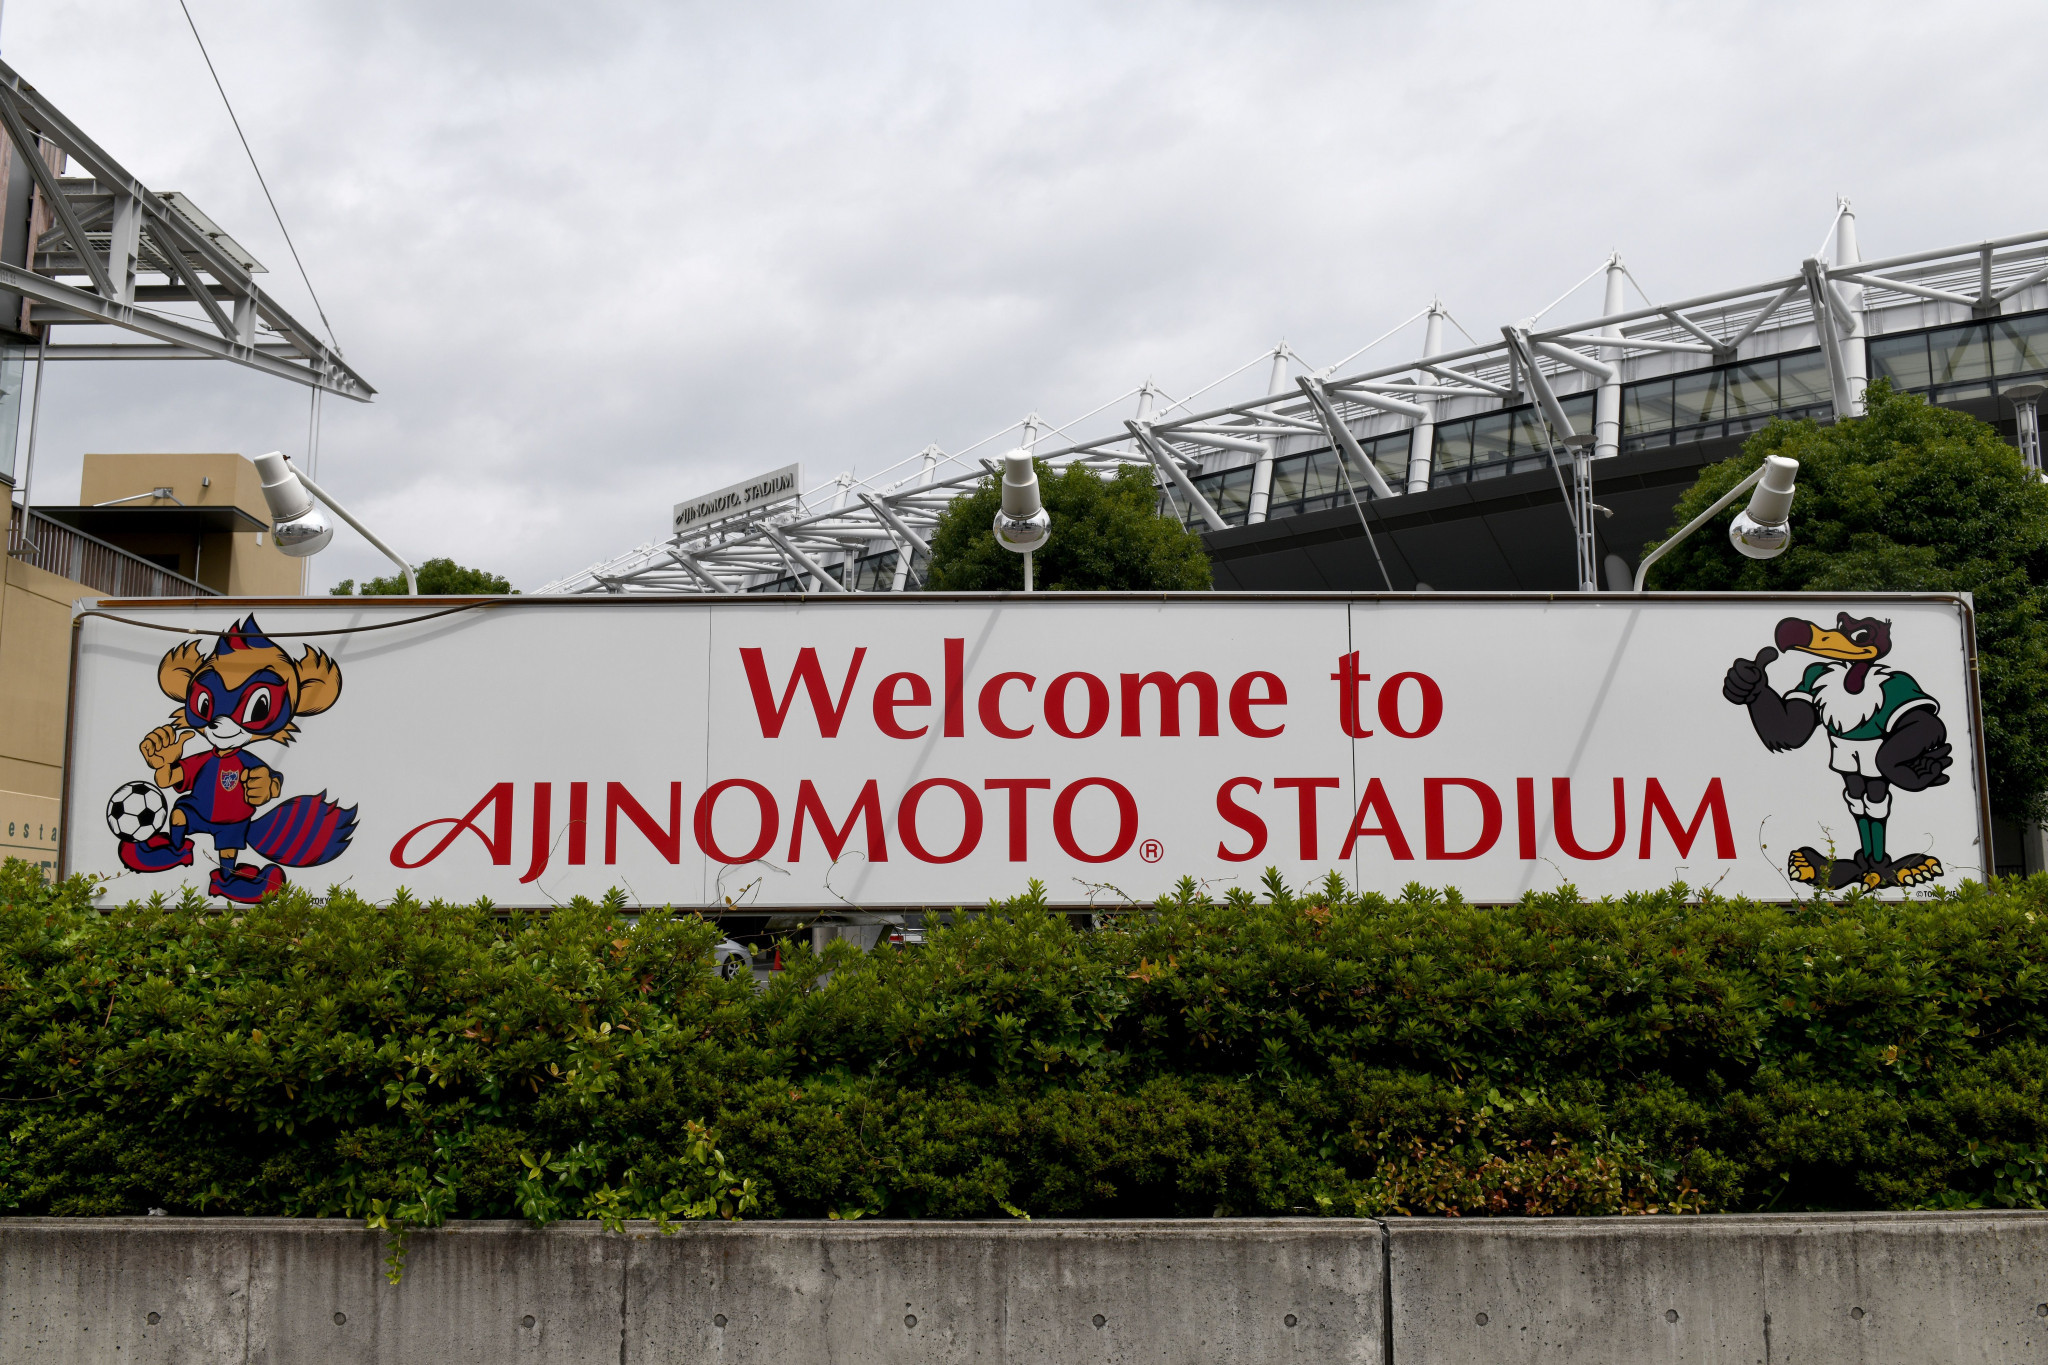 Ajinomoto Stadium will host the UIPM World Cup final next year in preparation for the Games ©Getty Images